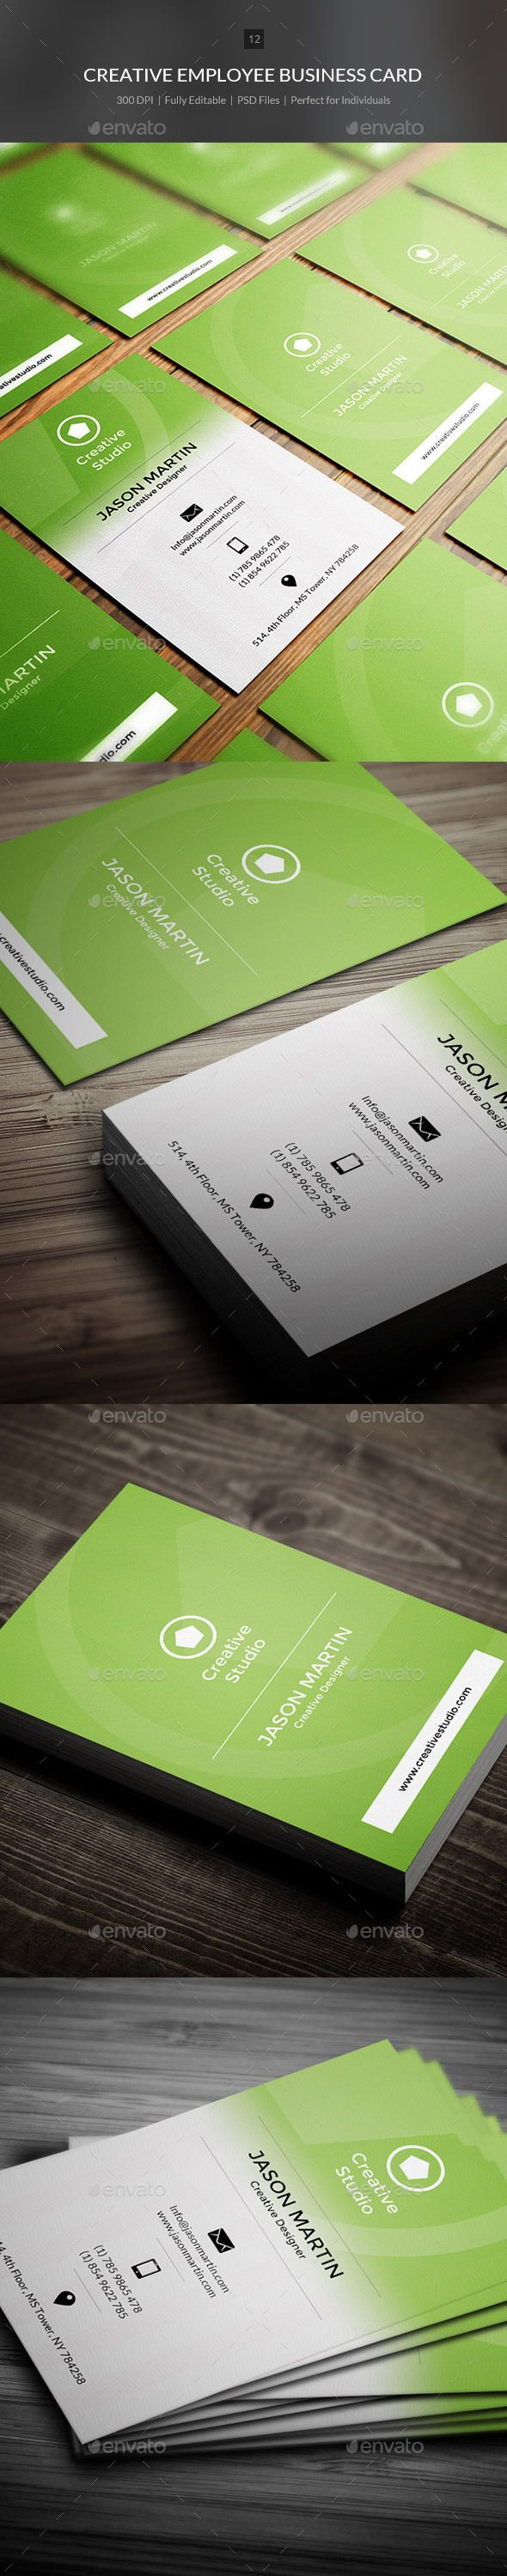 Creative Employee Business Card Template PSD | Buy and Download: http://graphicriver.net/item/creative-employee-business-card-12/9023406?WT.ac=category_thumb&WT.z_author=bouncy&ref=ksioks